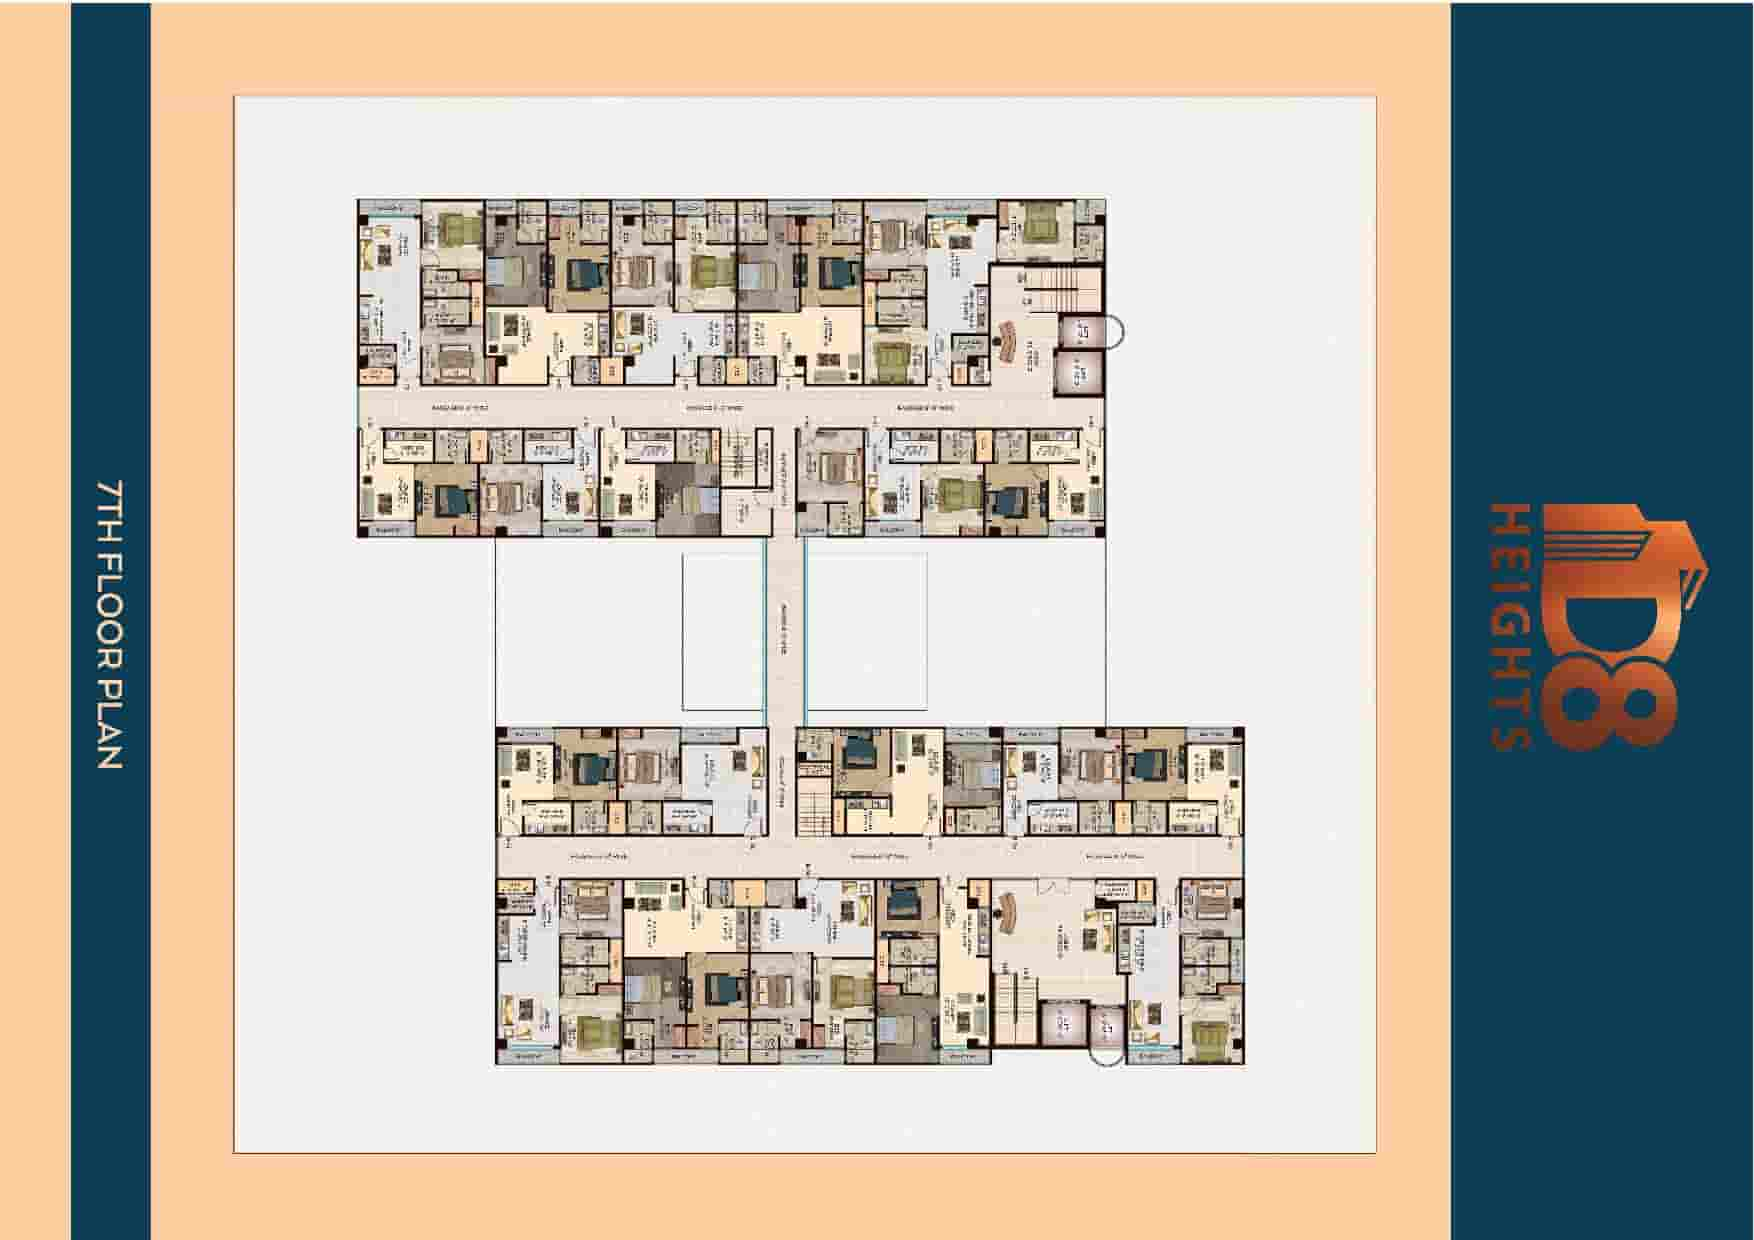 D8 Heights 7th Floor Plan